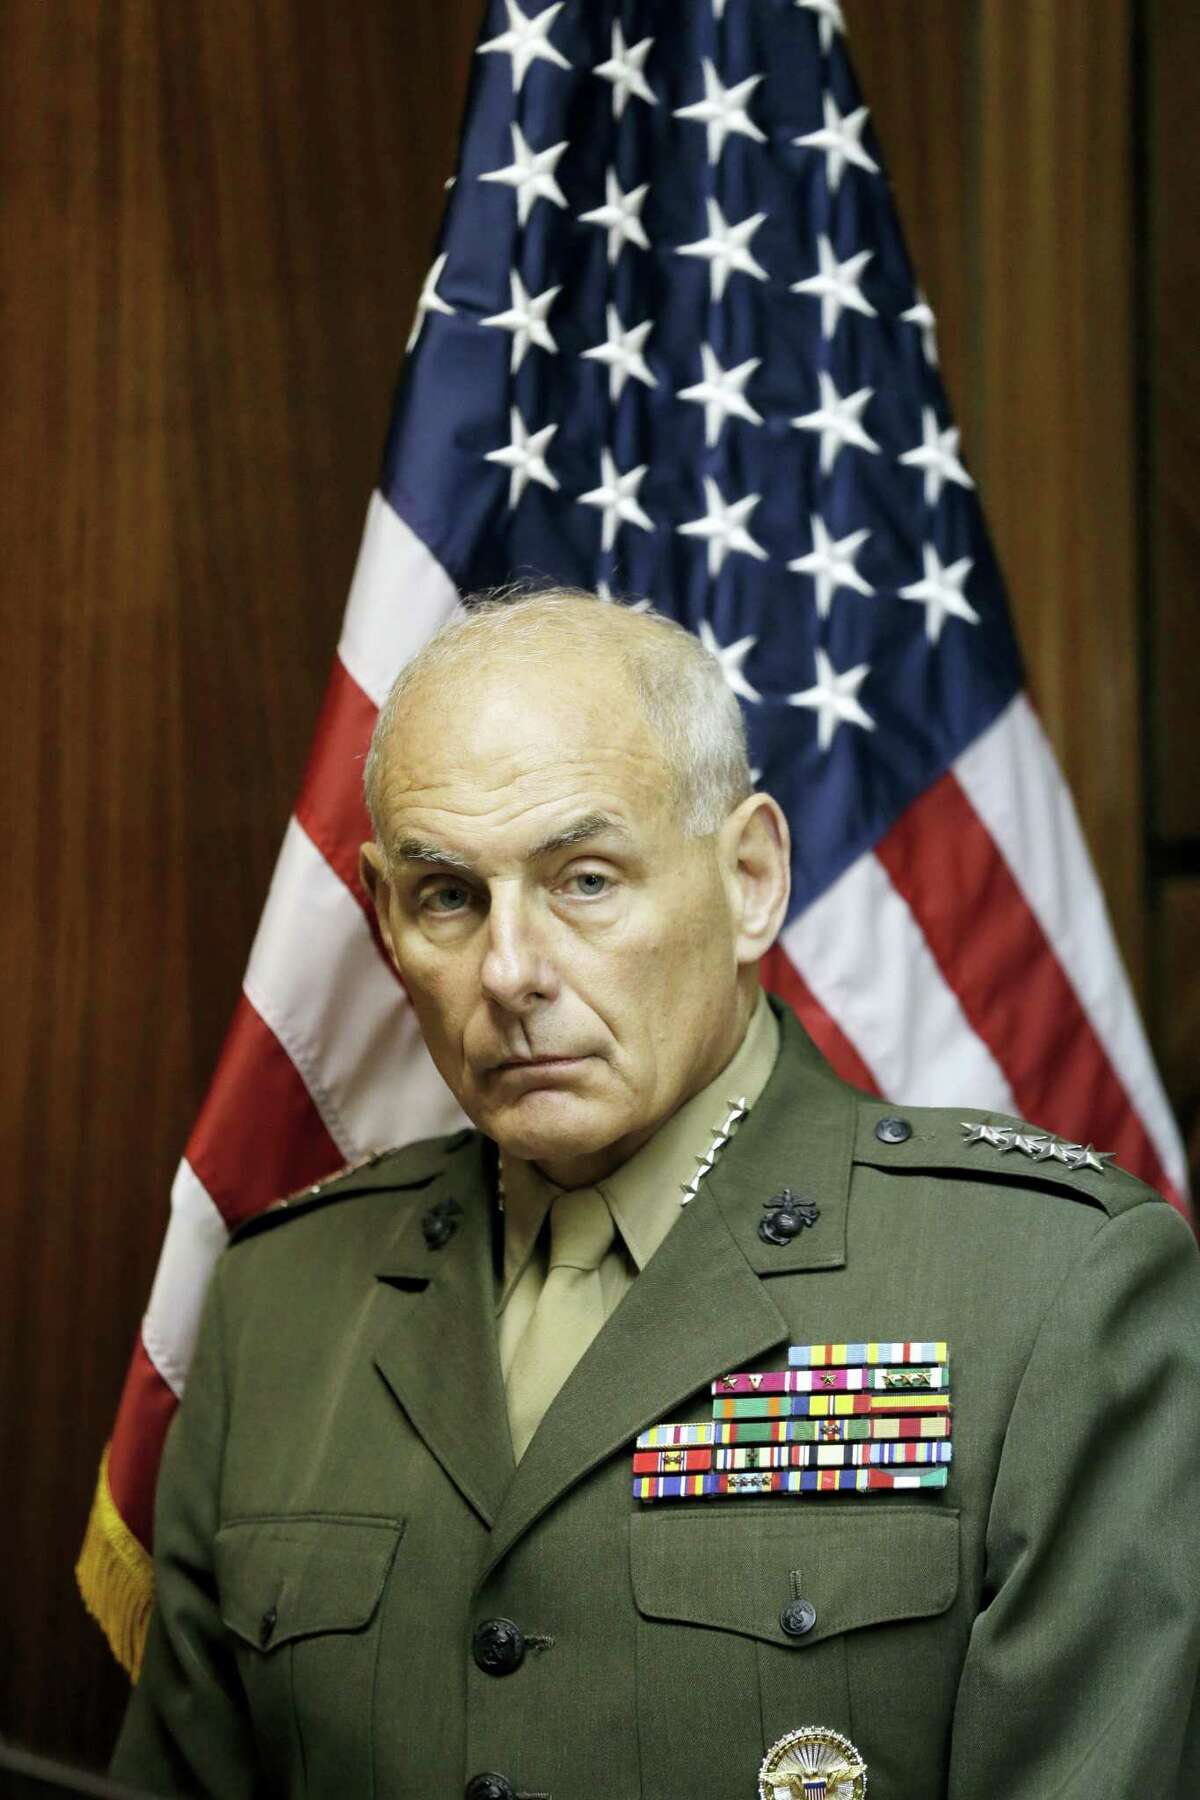 U.S. Marine Gen. John F. Kelly, commander of U.S. Southern Command, attends a press conference at Paraguay's Defense Ministry in Asuncion.